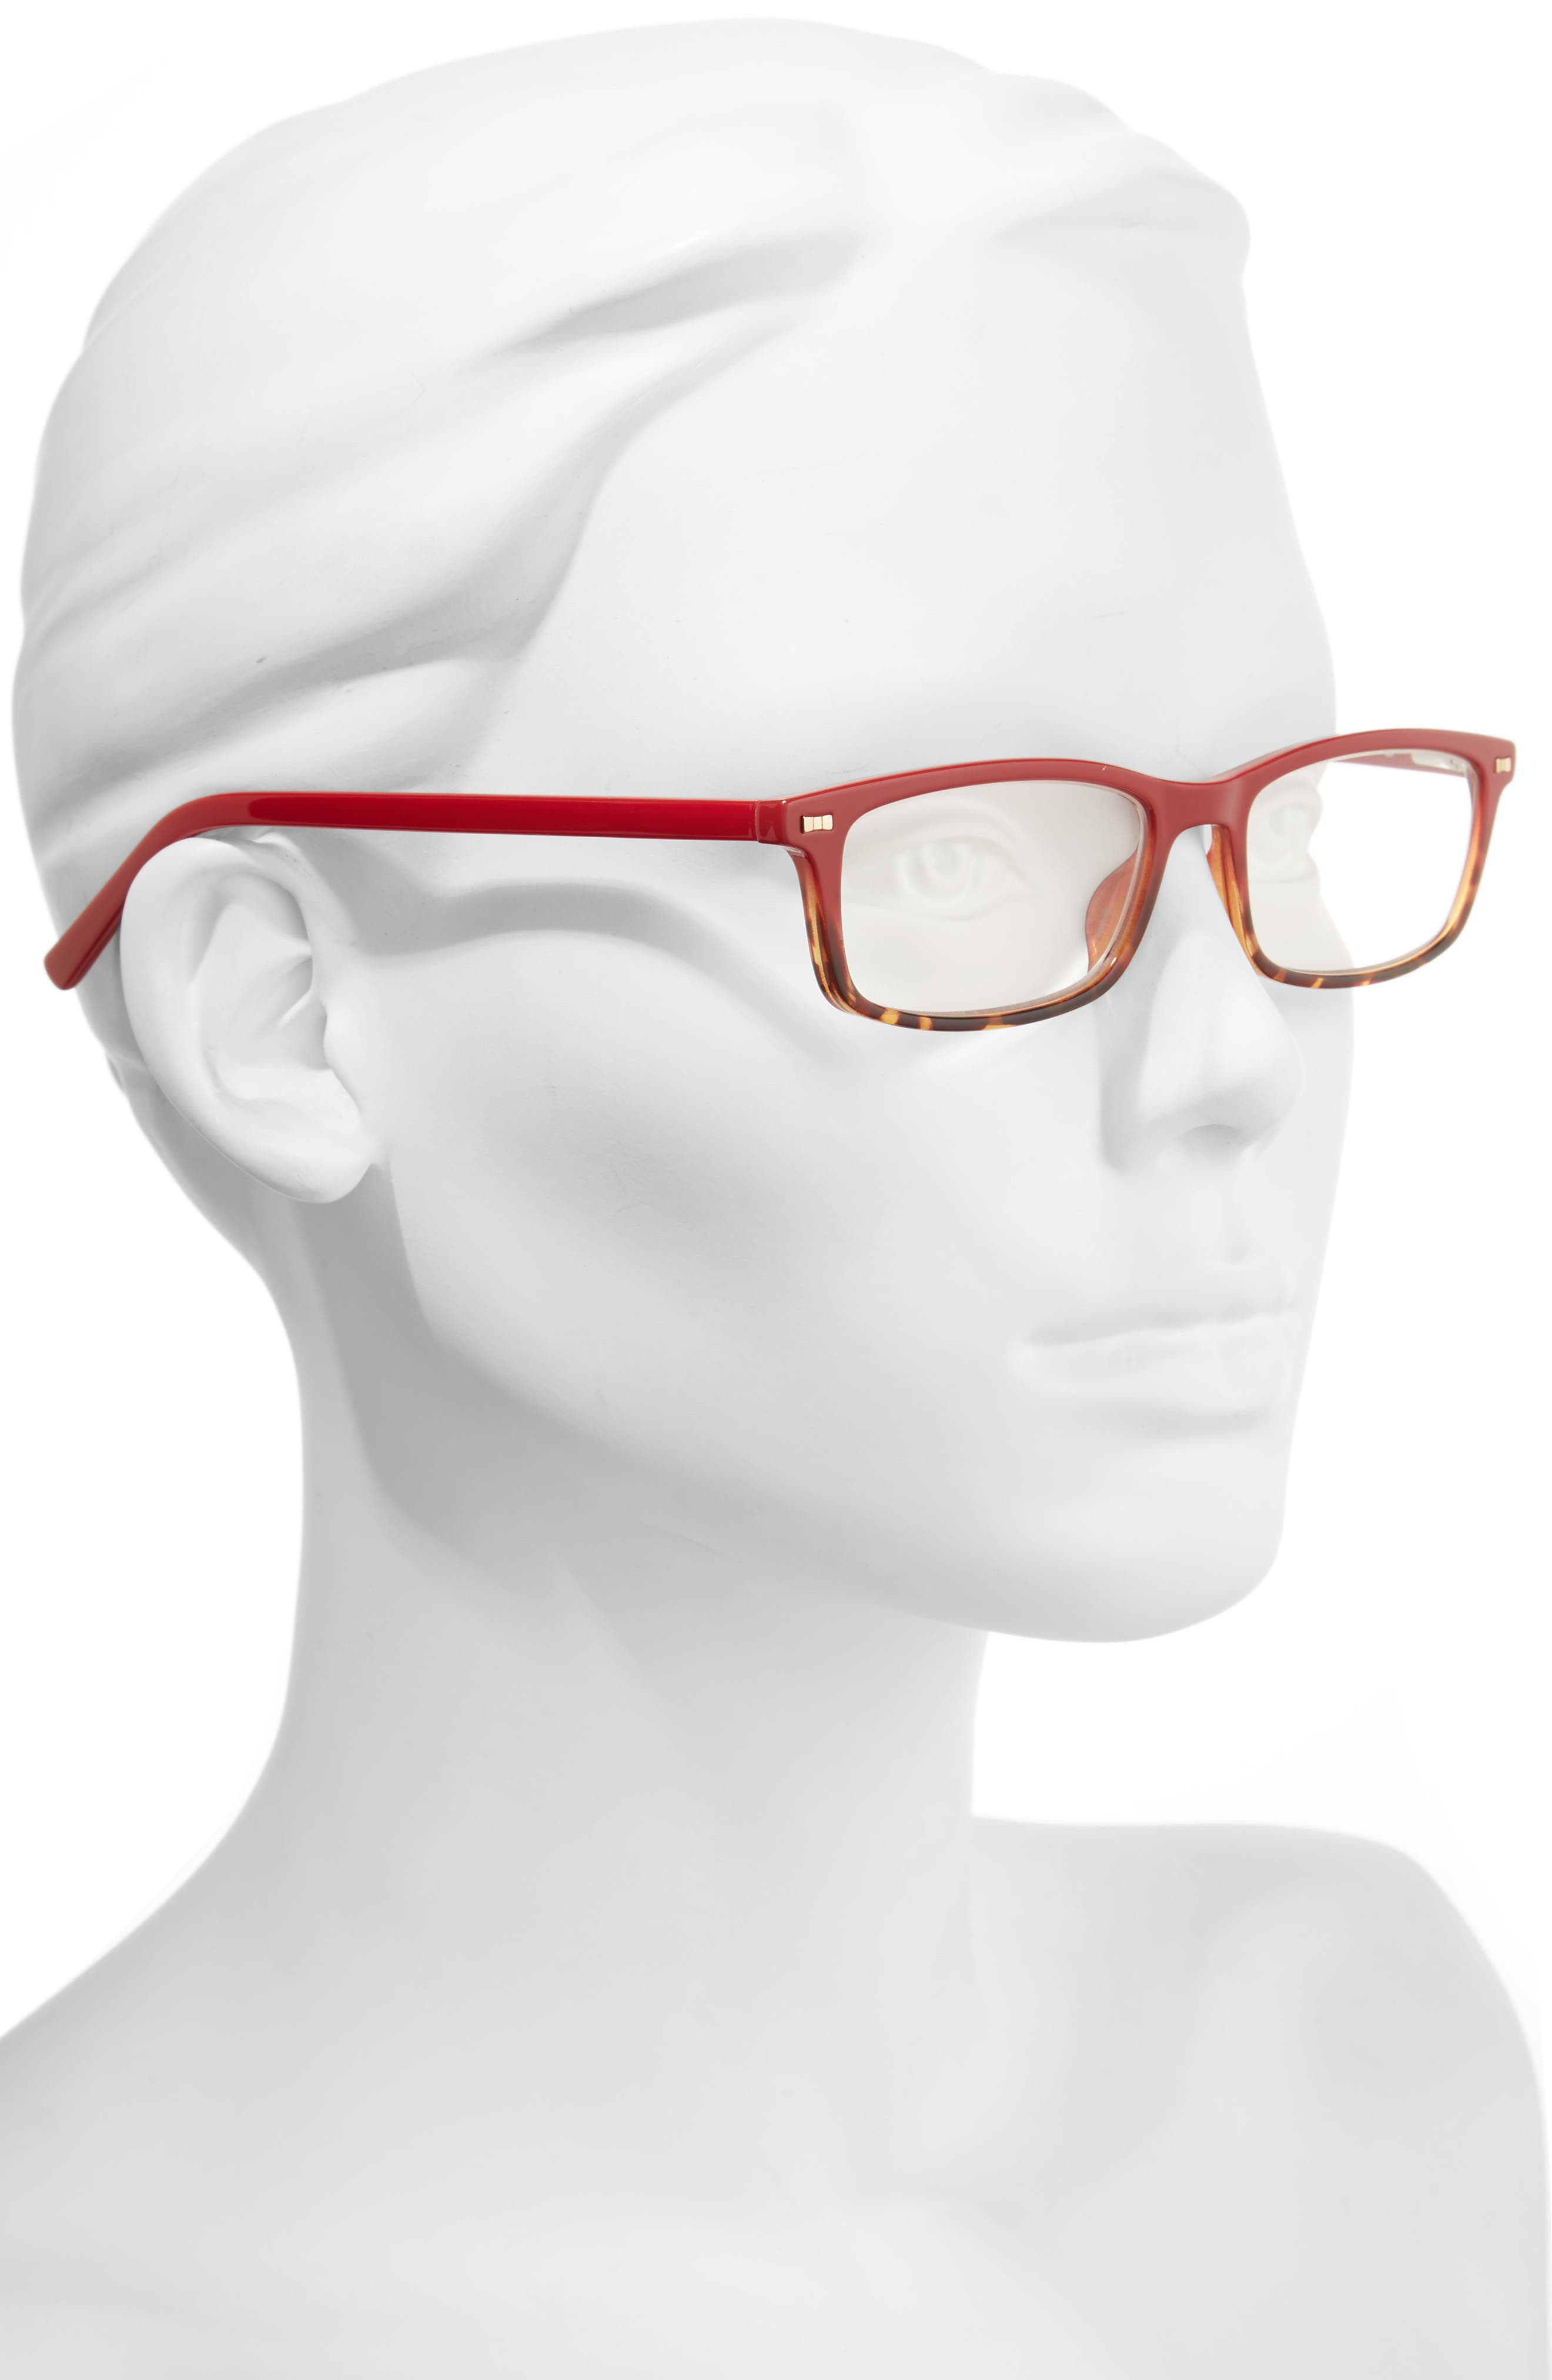 jodie 50mm rectangular reading glasses,                             Alternate thumbnail 2, color,                             Red Havana